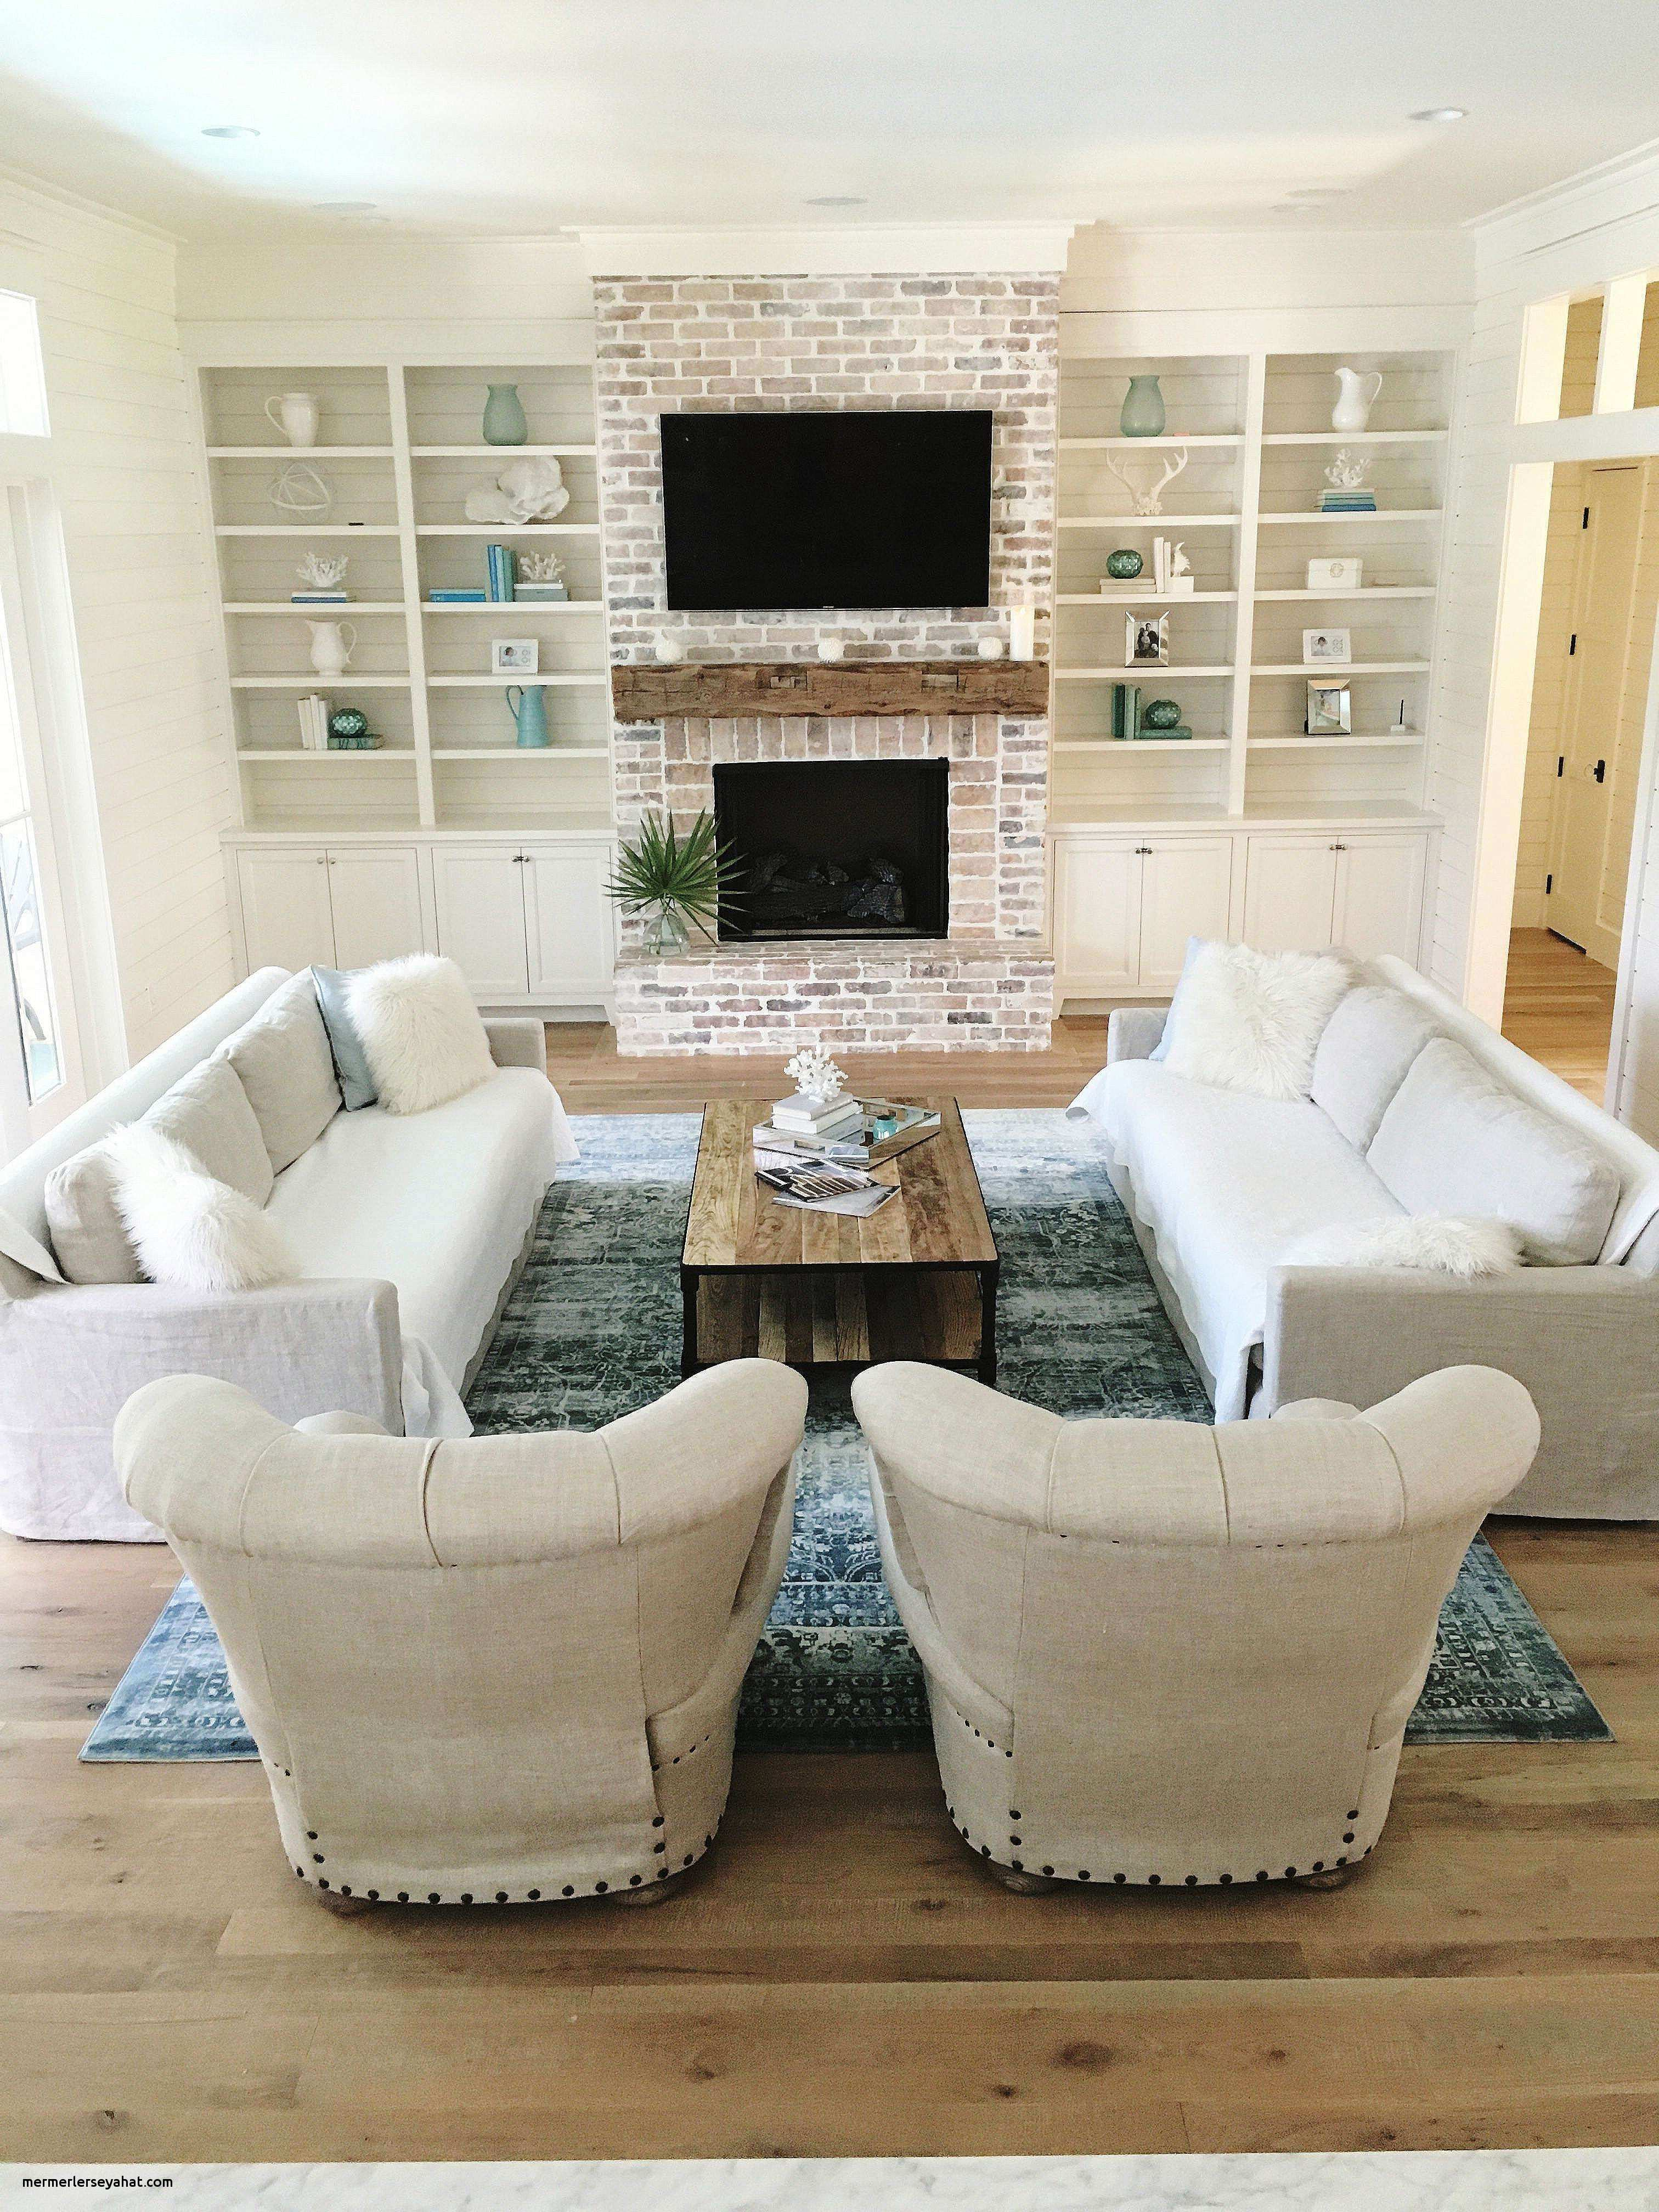 Decorative Home Unique Wall Decal Luxury 1 Kirkland Wall Decor Home